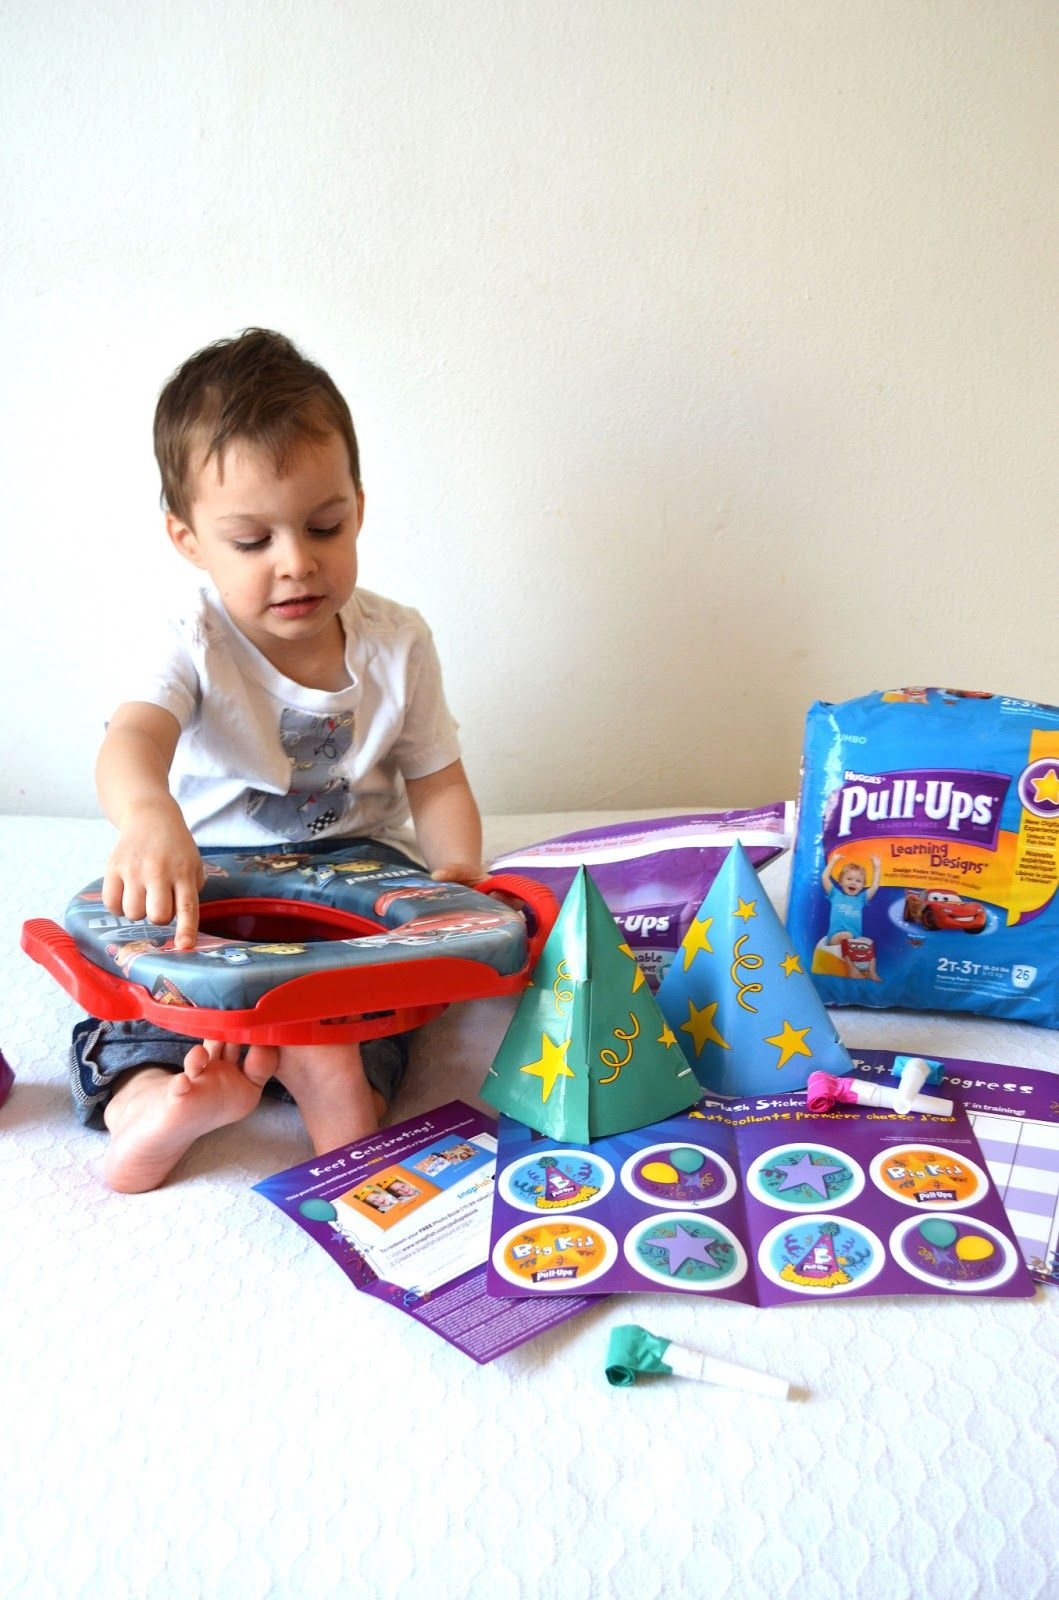 Potty Training & PullUps Prize Pack Giveaway {Sponsored